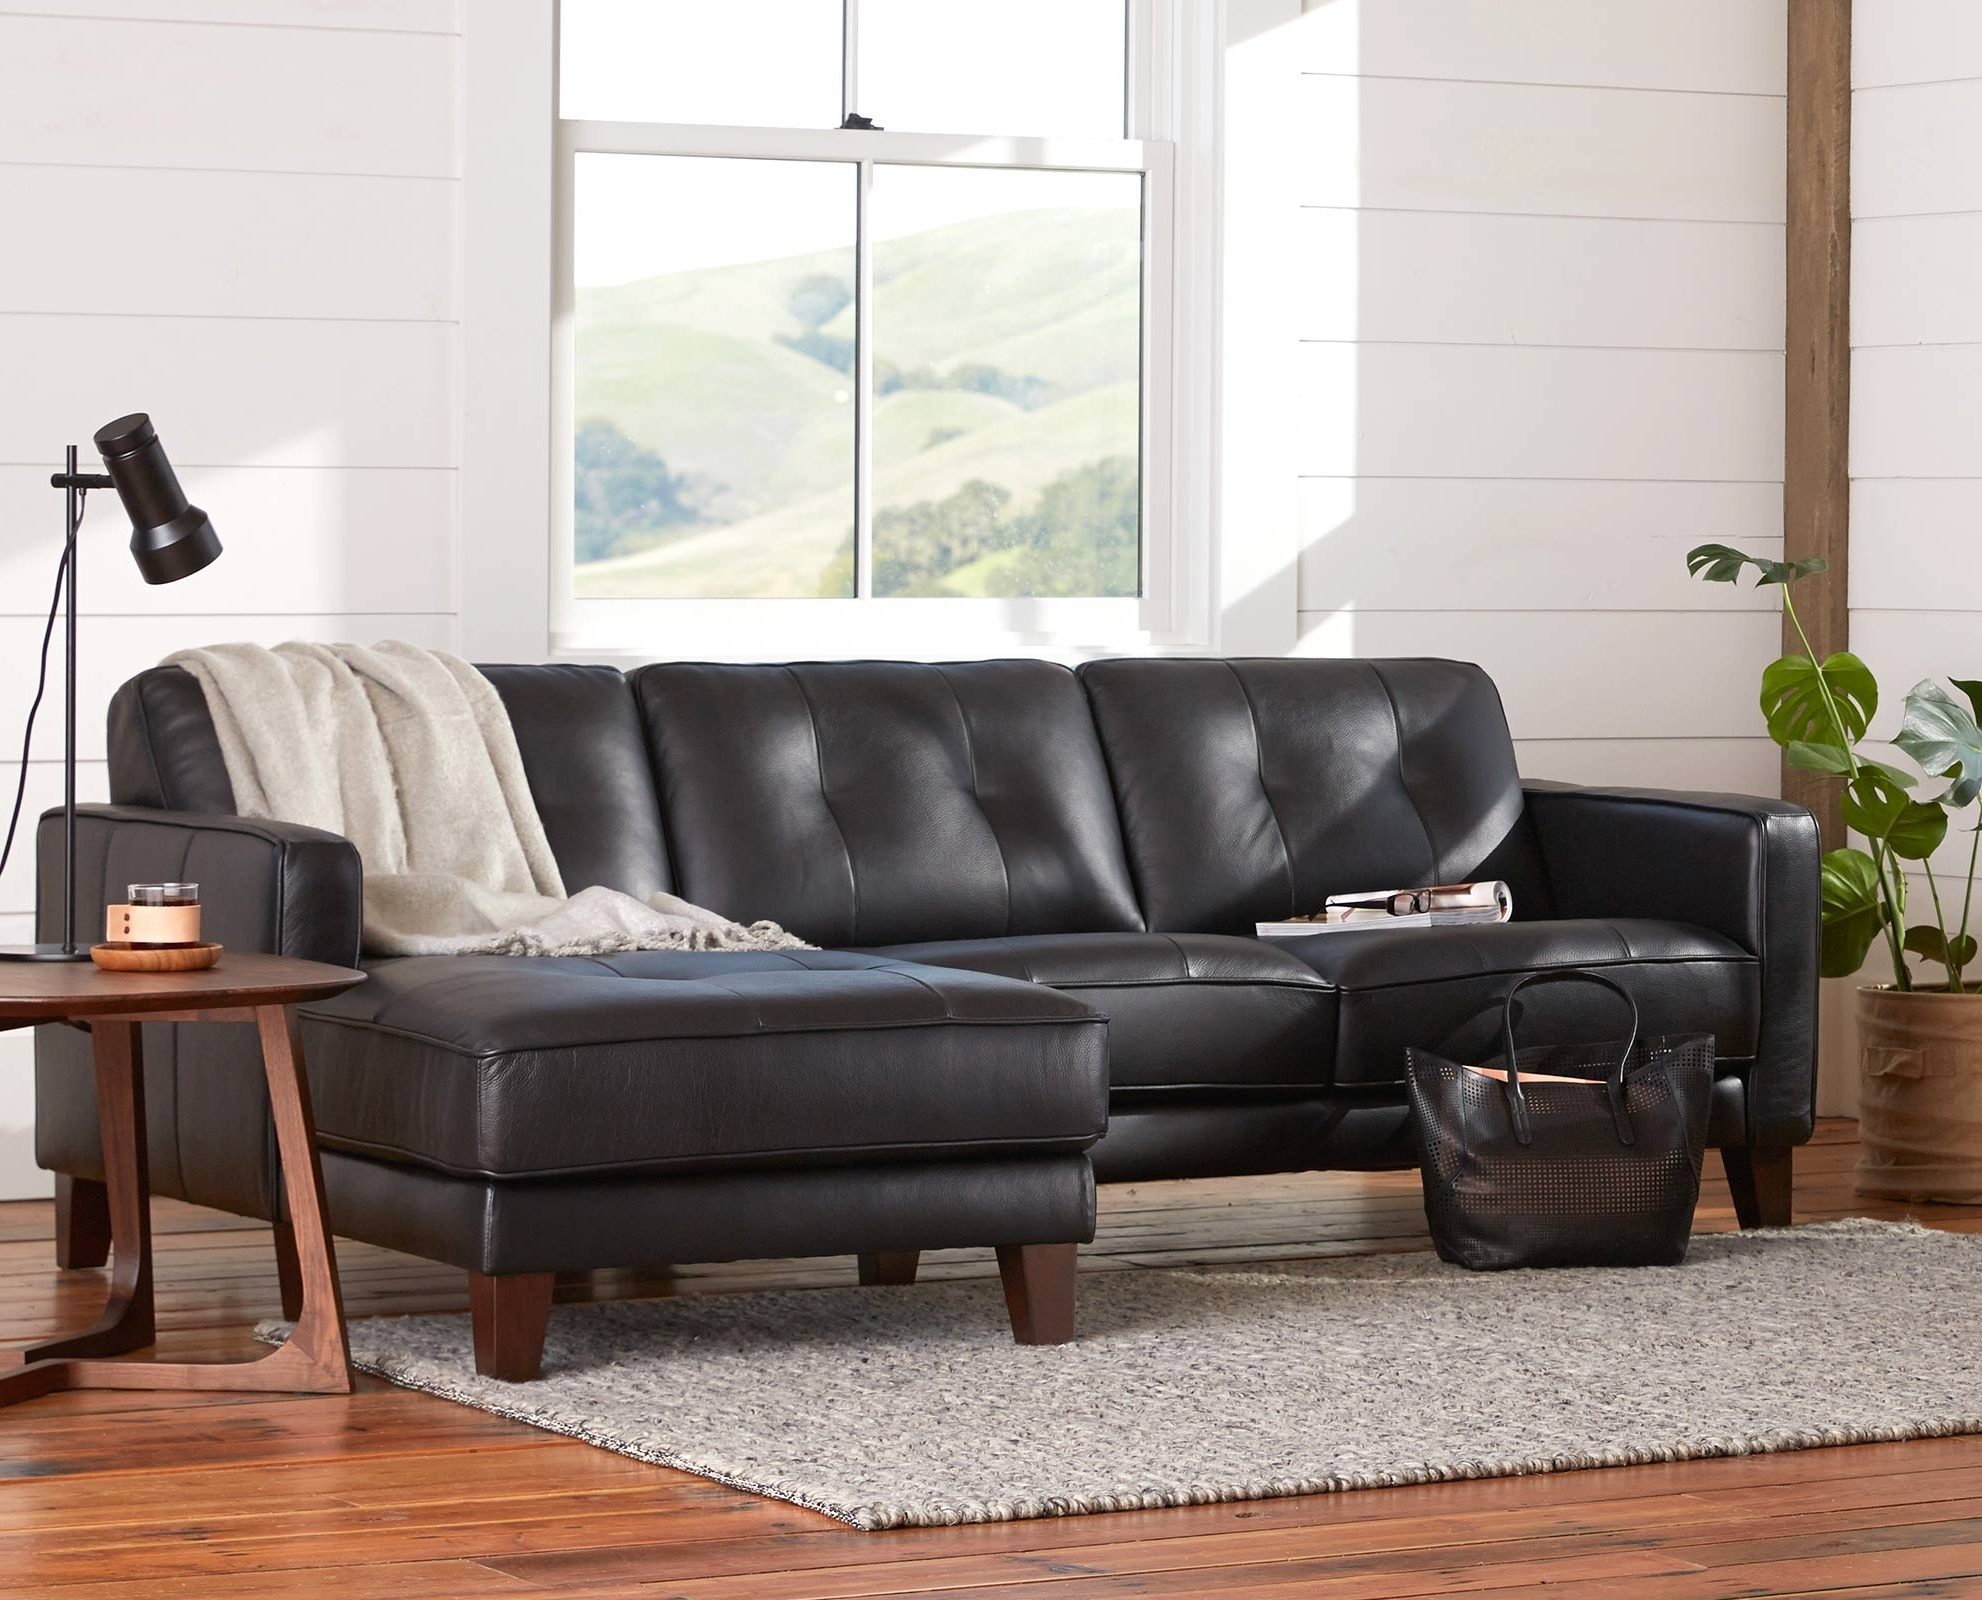 Furniture: Wonderful Selection Of Qualitydaniafurniture Inside Famous Dania Sectional Sofas (View 16 of 20)